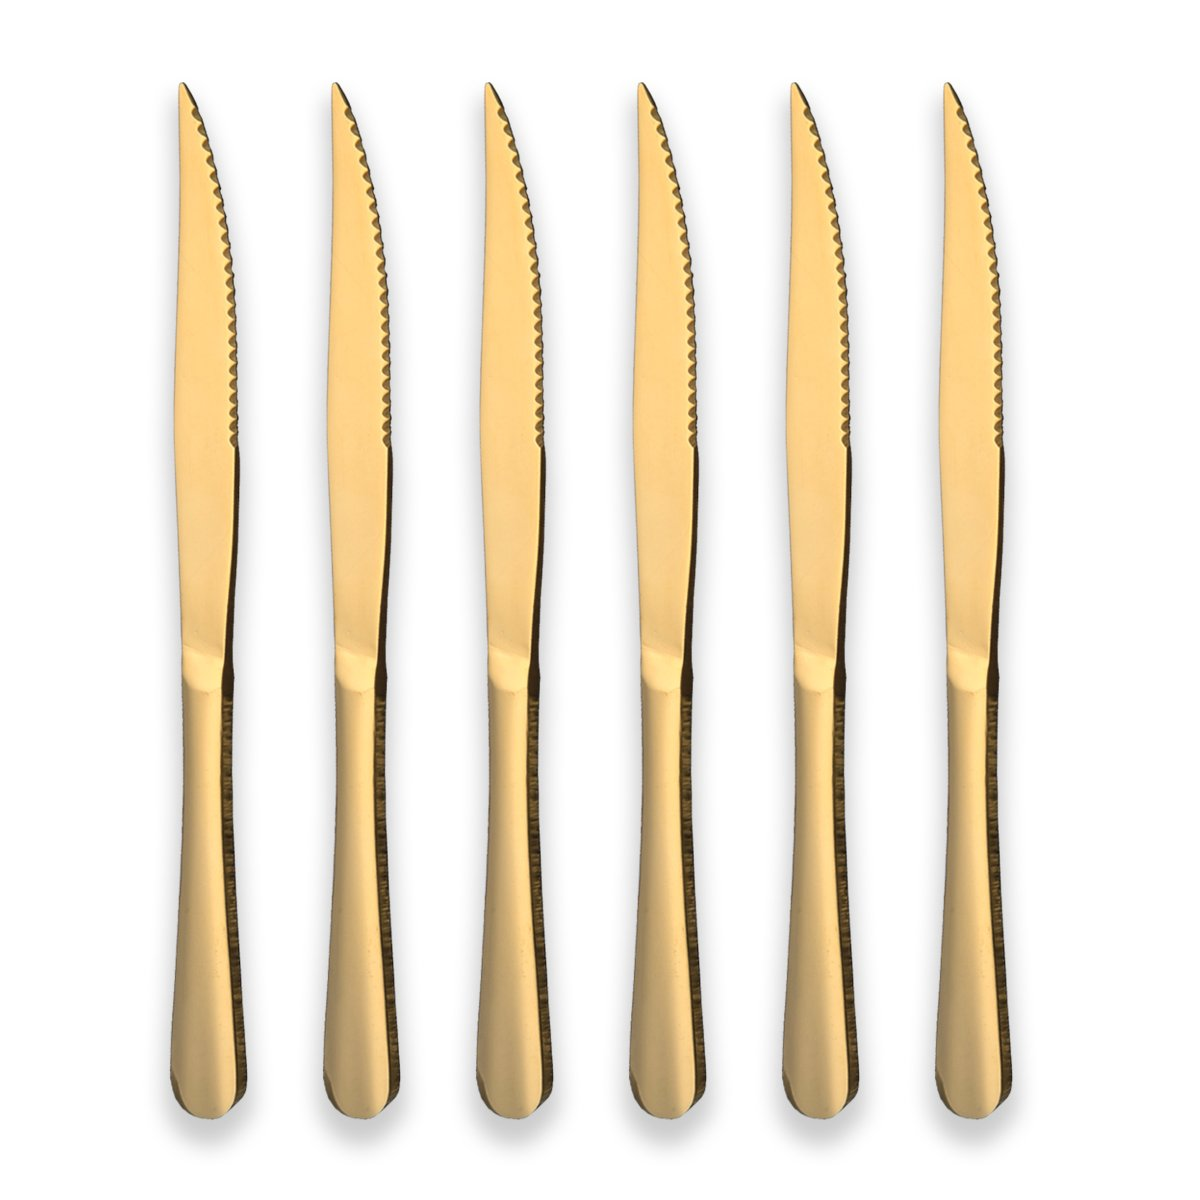 Gold Steak Knife, Berglander 6 Pieces Titanium Gold Plateing Stainless Steel Steak Knives, Heavy Duty Steak Knife Set for Chefs Great For BBQ Weddings Dinners Parties Homes Kitchens Pack of 6